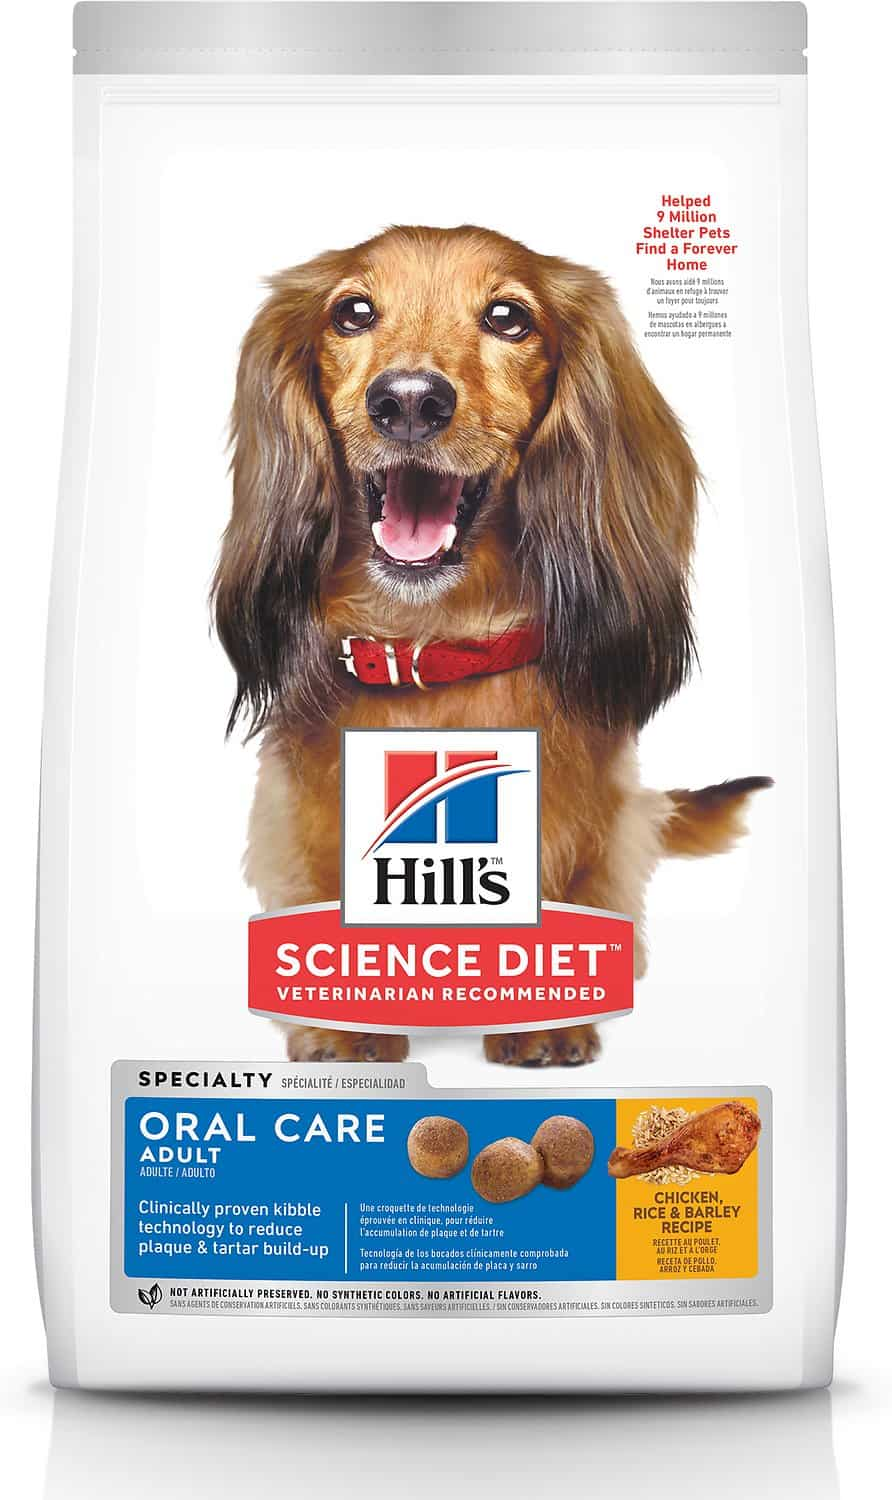 What's the Best Dog Food for Bad Breath? What to Look For When Choosing a Dental Health Food for Your Dog? 18